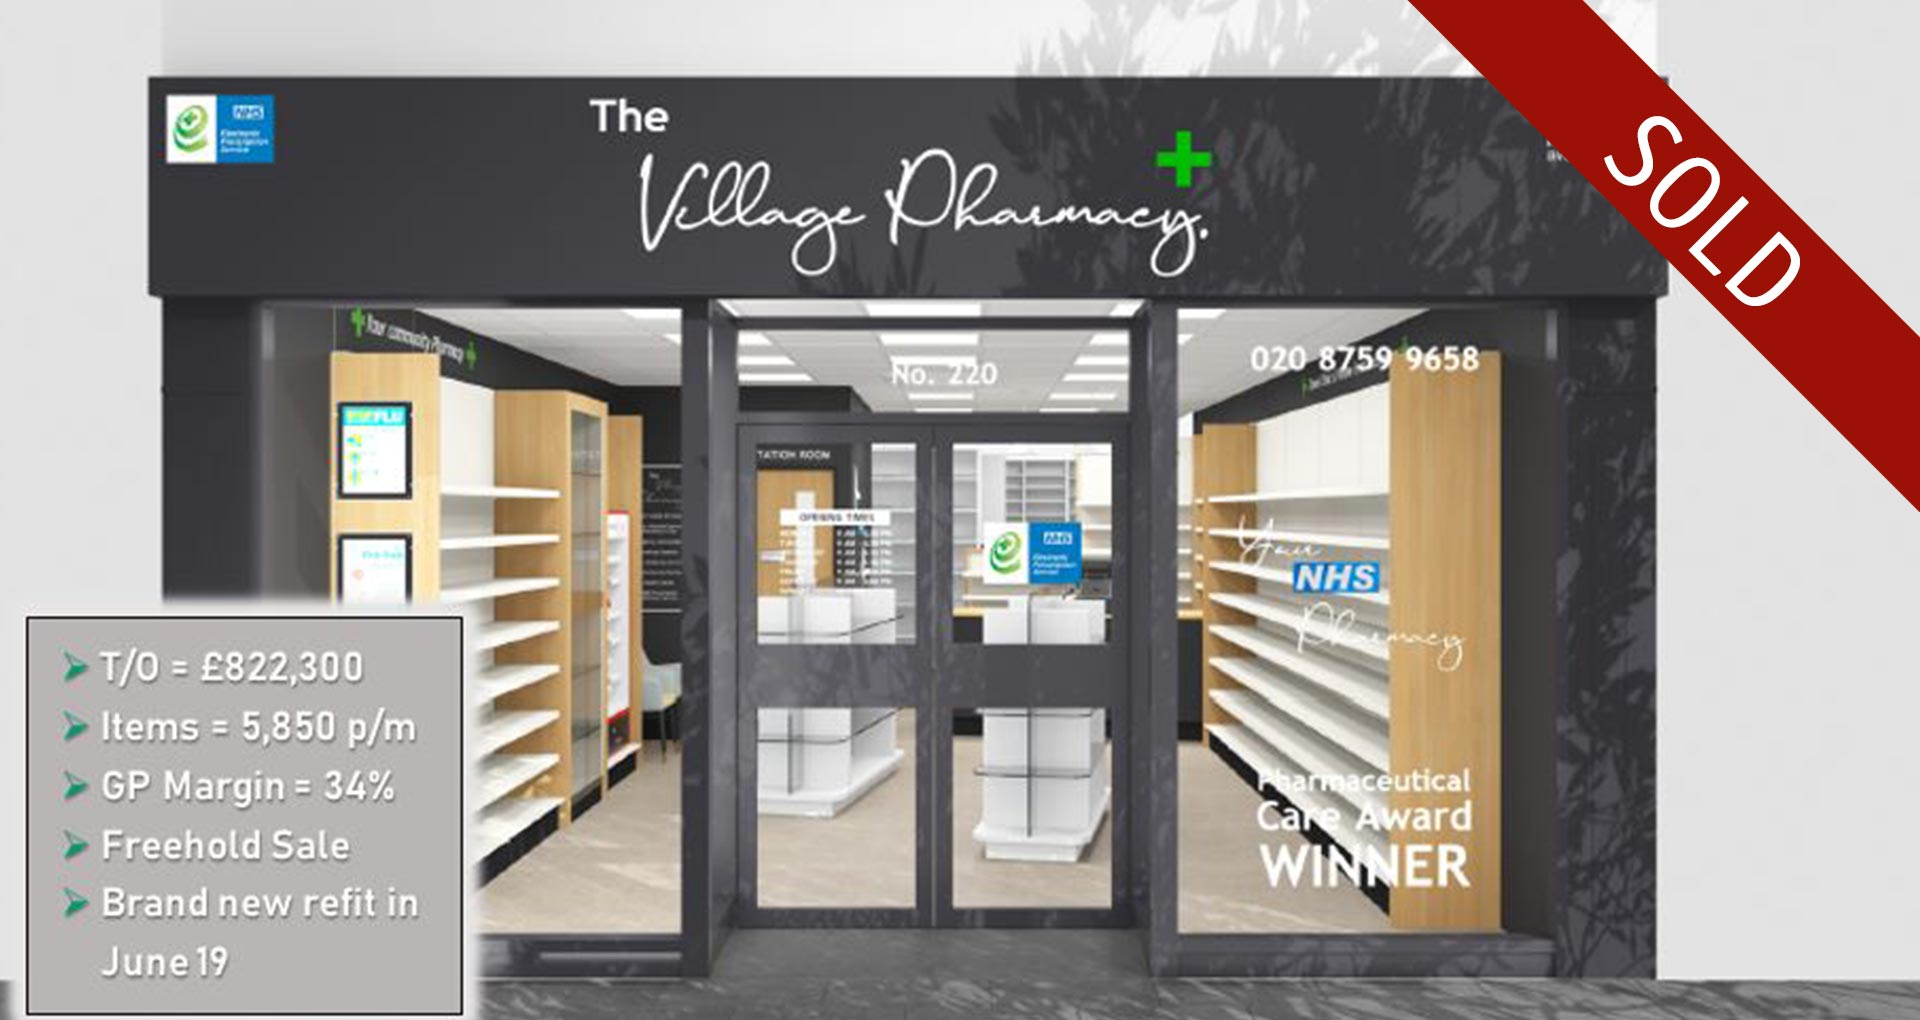 Village pharmacy sold within 3.5 months